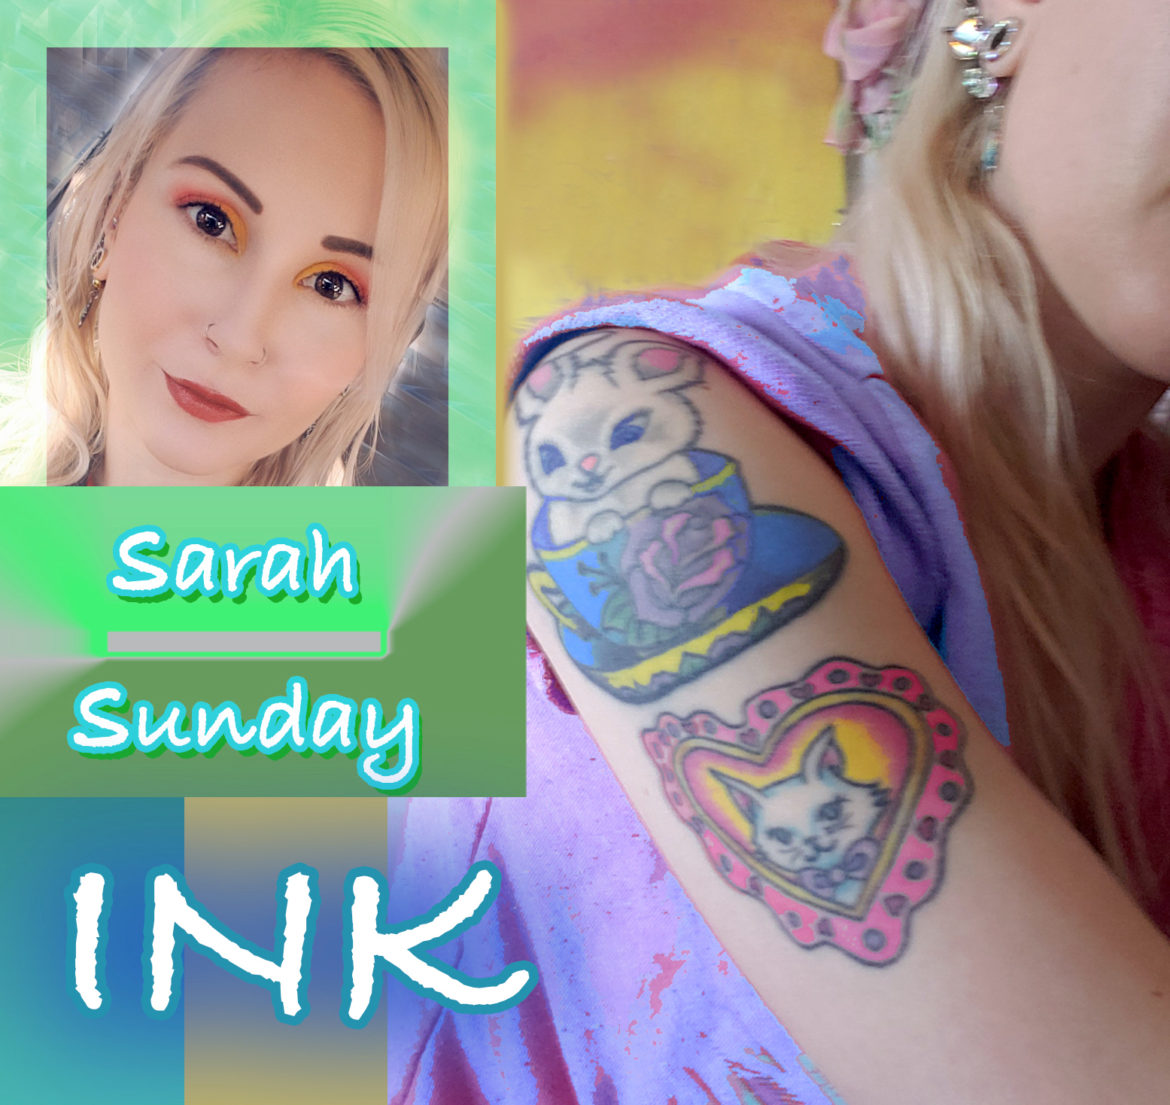 Summers dream pop single By Sarah Sunday